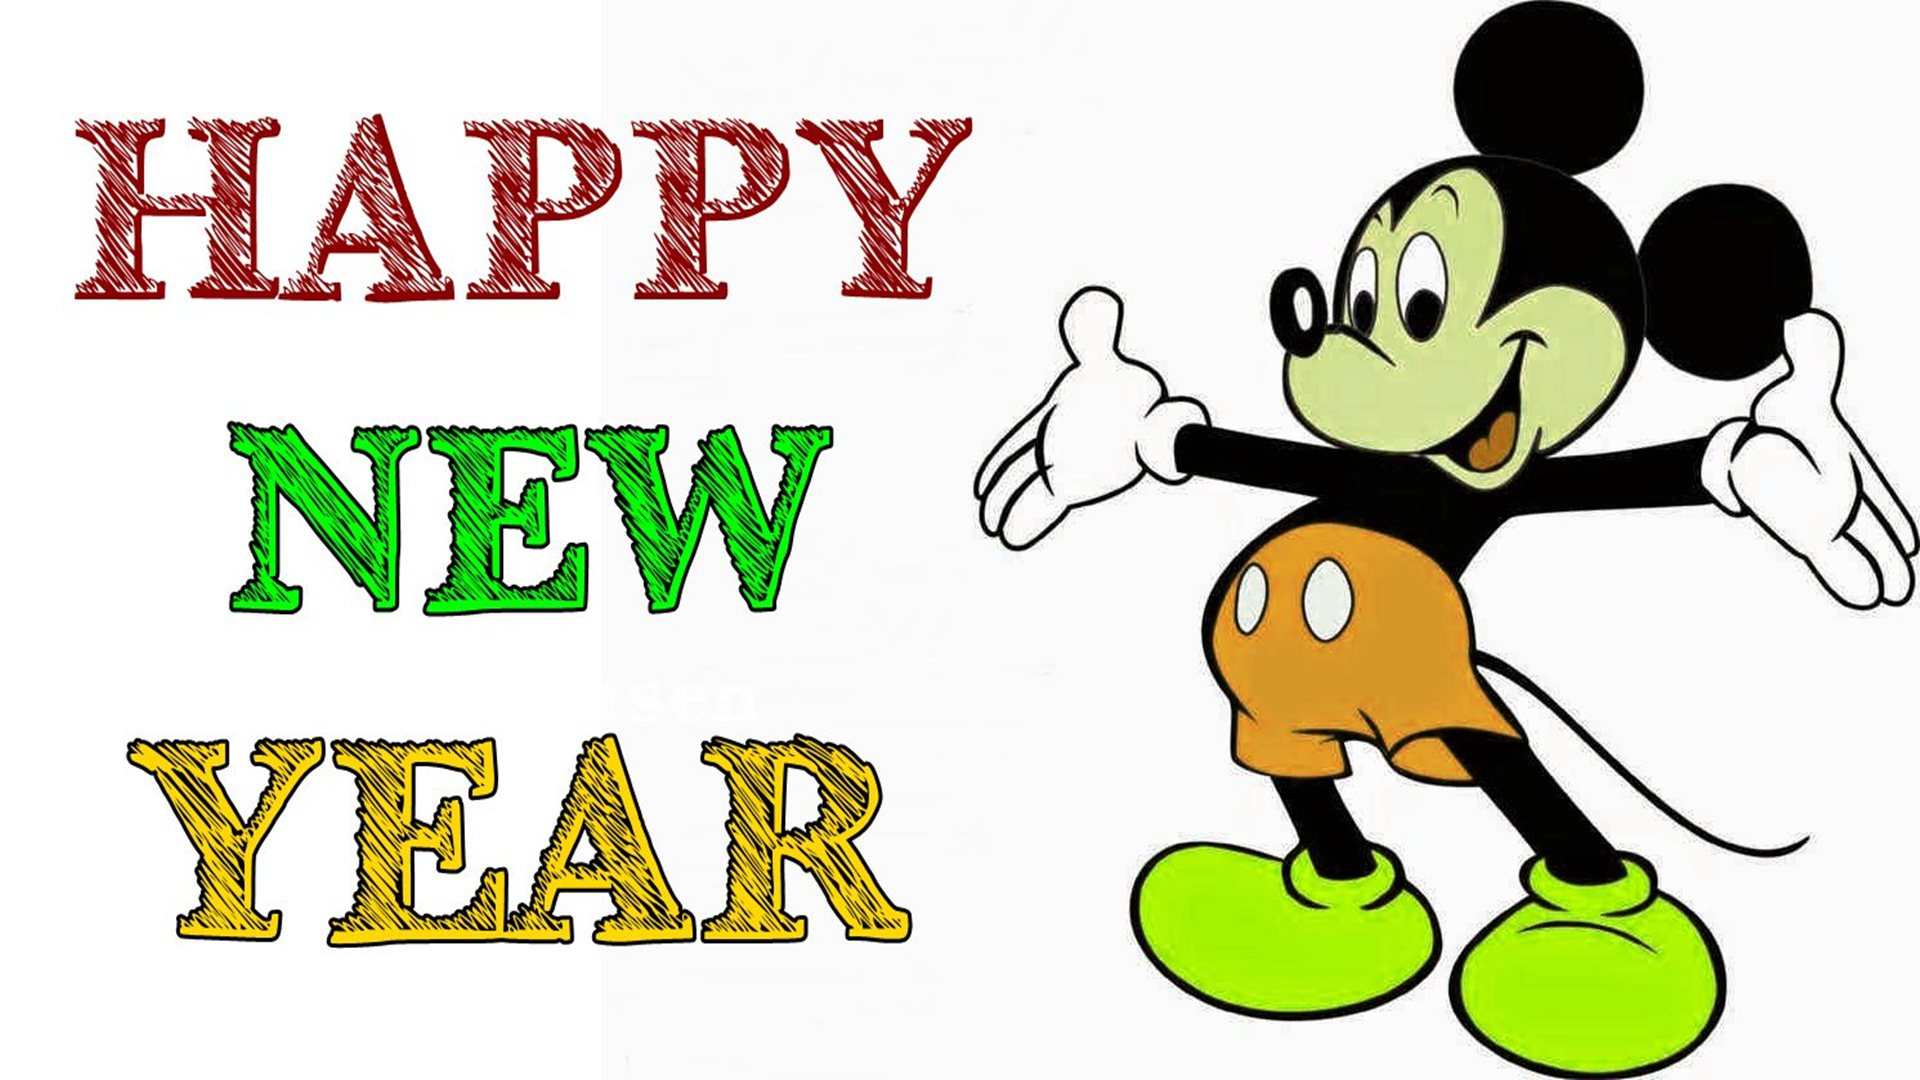 1920x1080 Funny Happy New Year Cartoon Hd ~ Inspiring Quotes And Words In Life